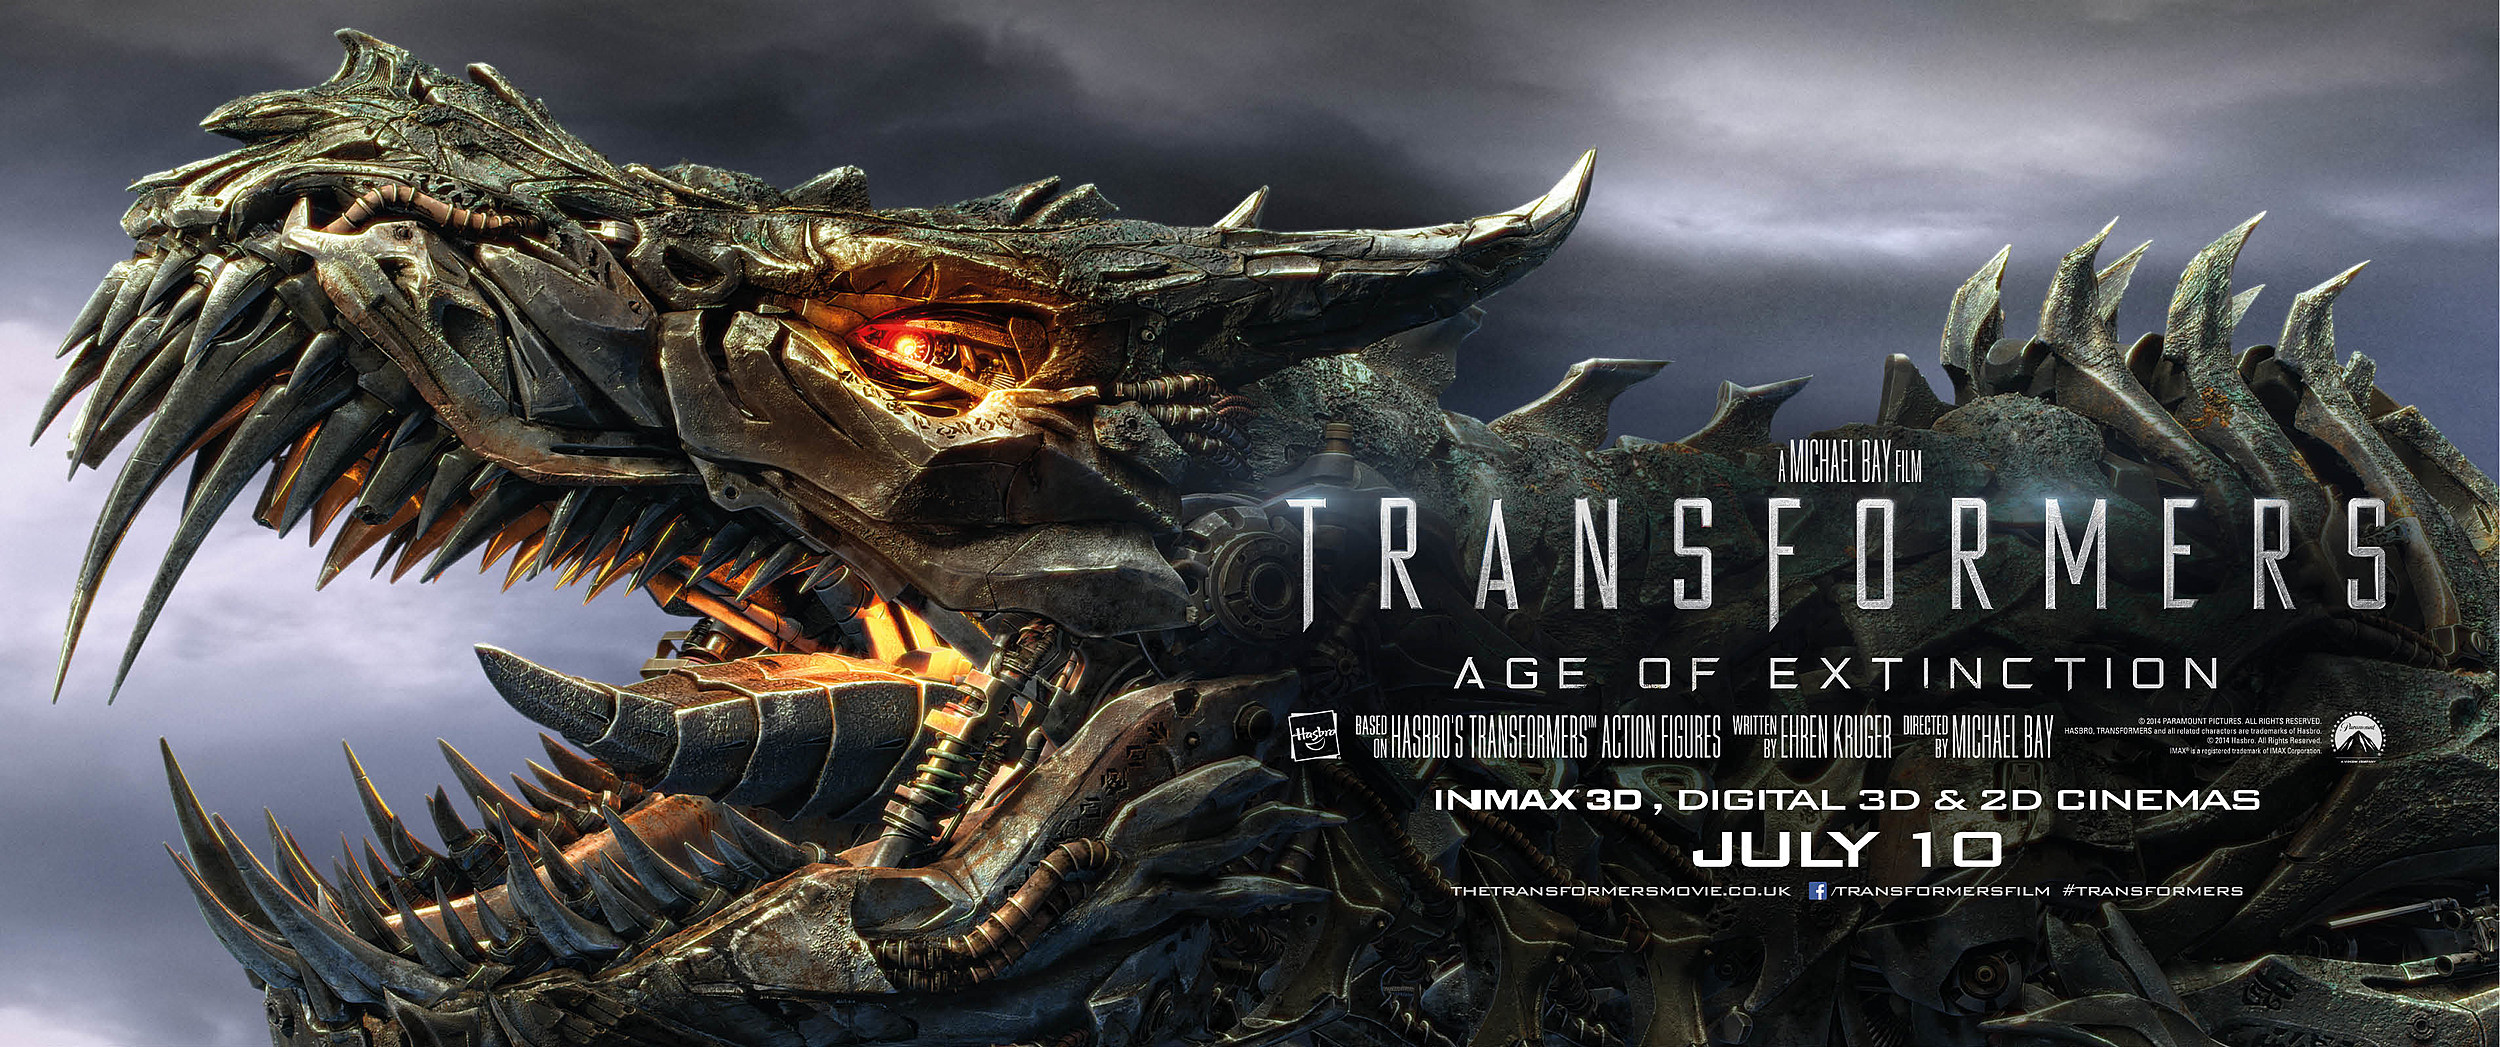 Transformers: Age of Extinction banner w/ Grimlock